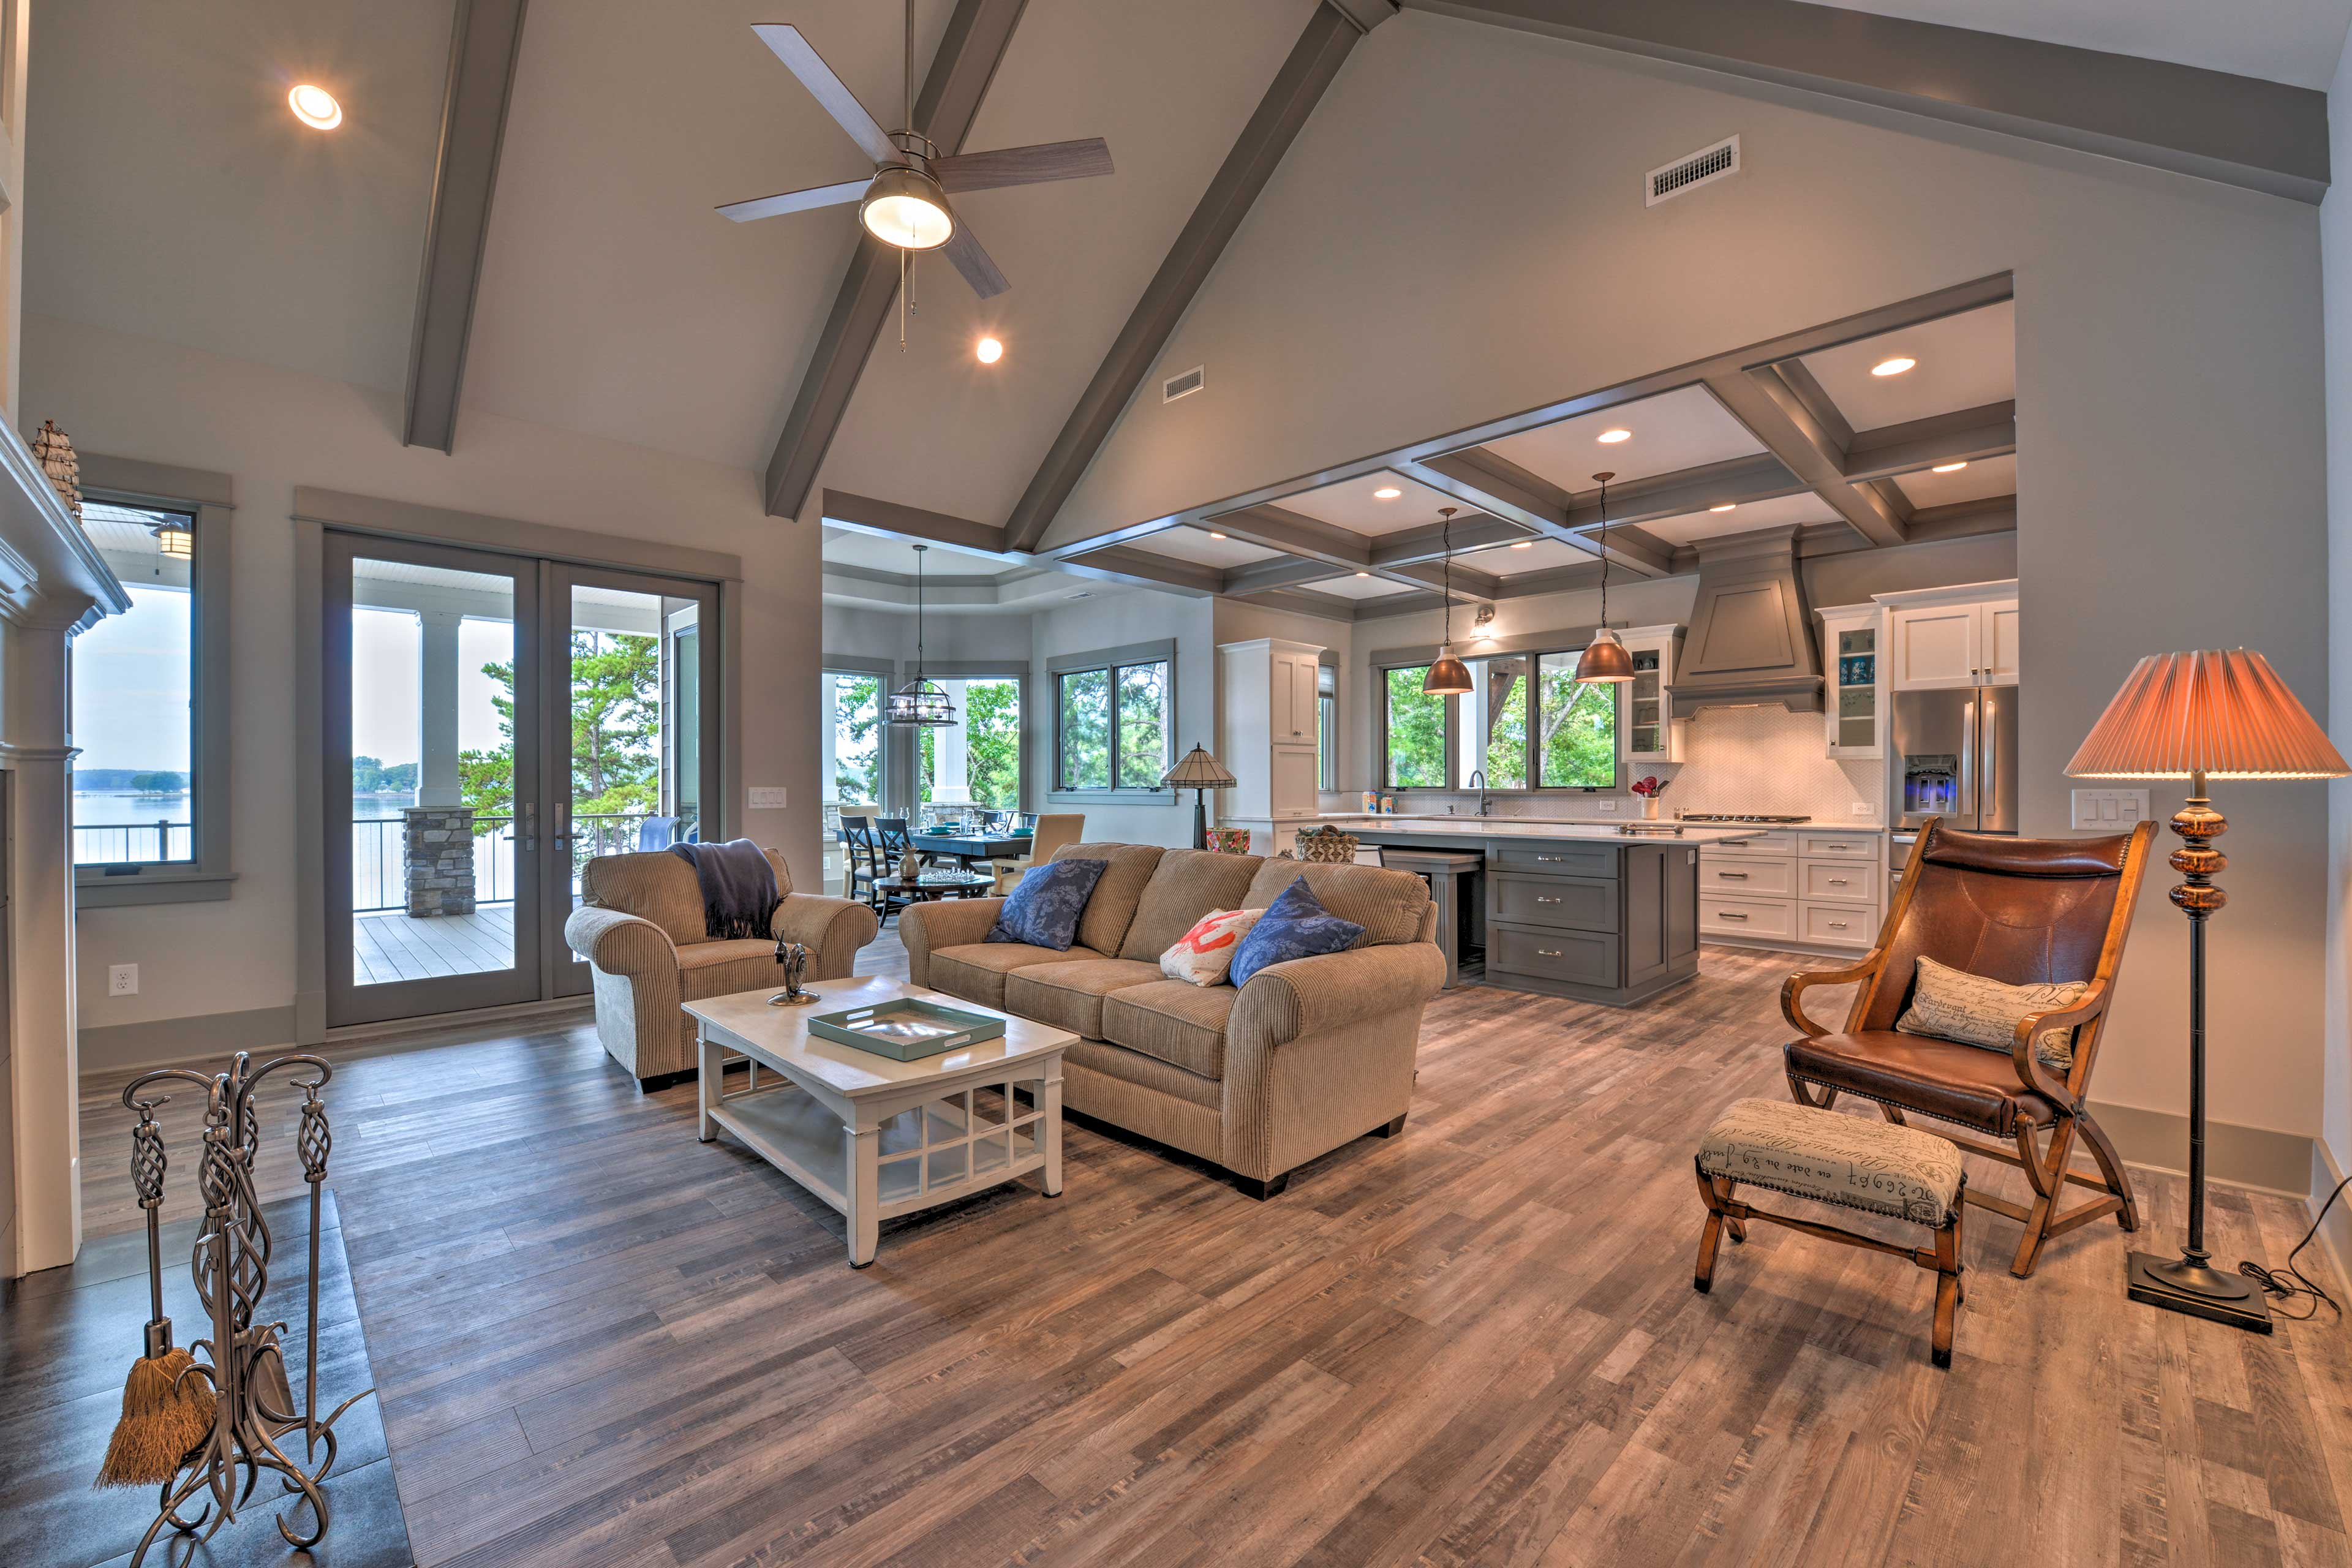 With over 2,500 square feet of space, you'll never run out of places to relax.